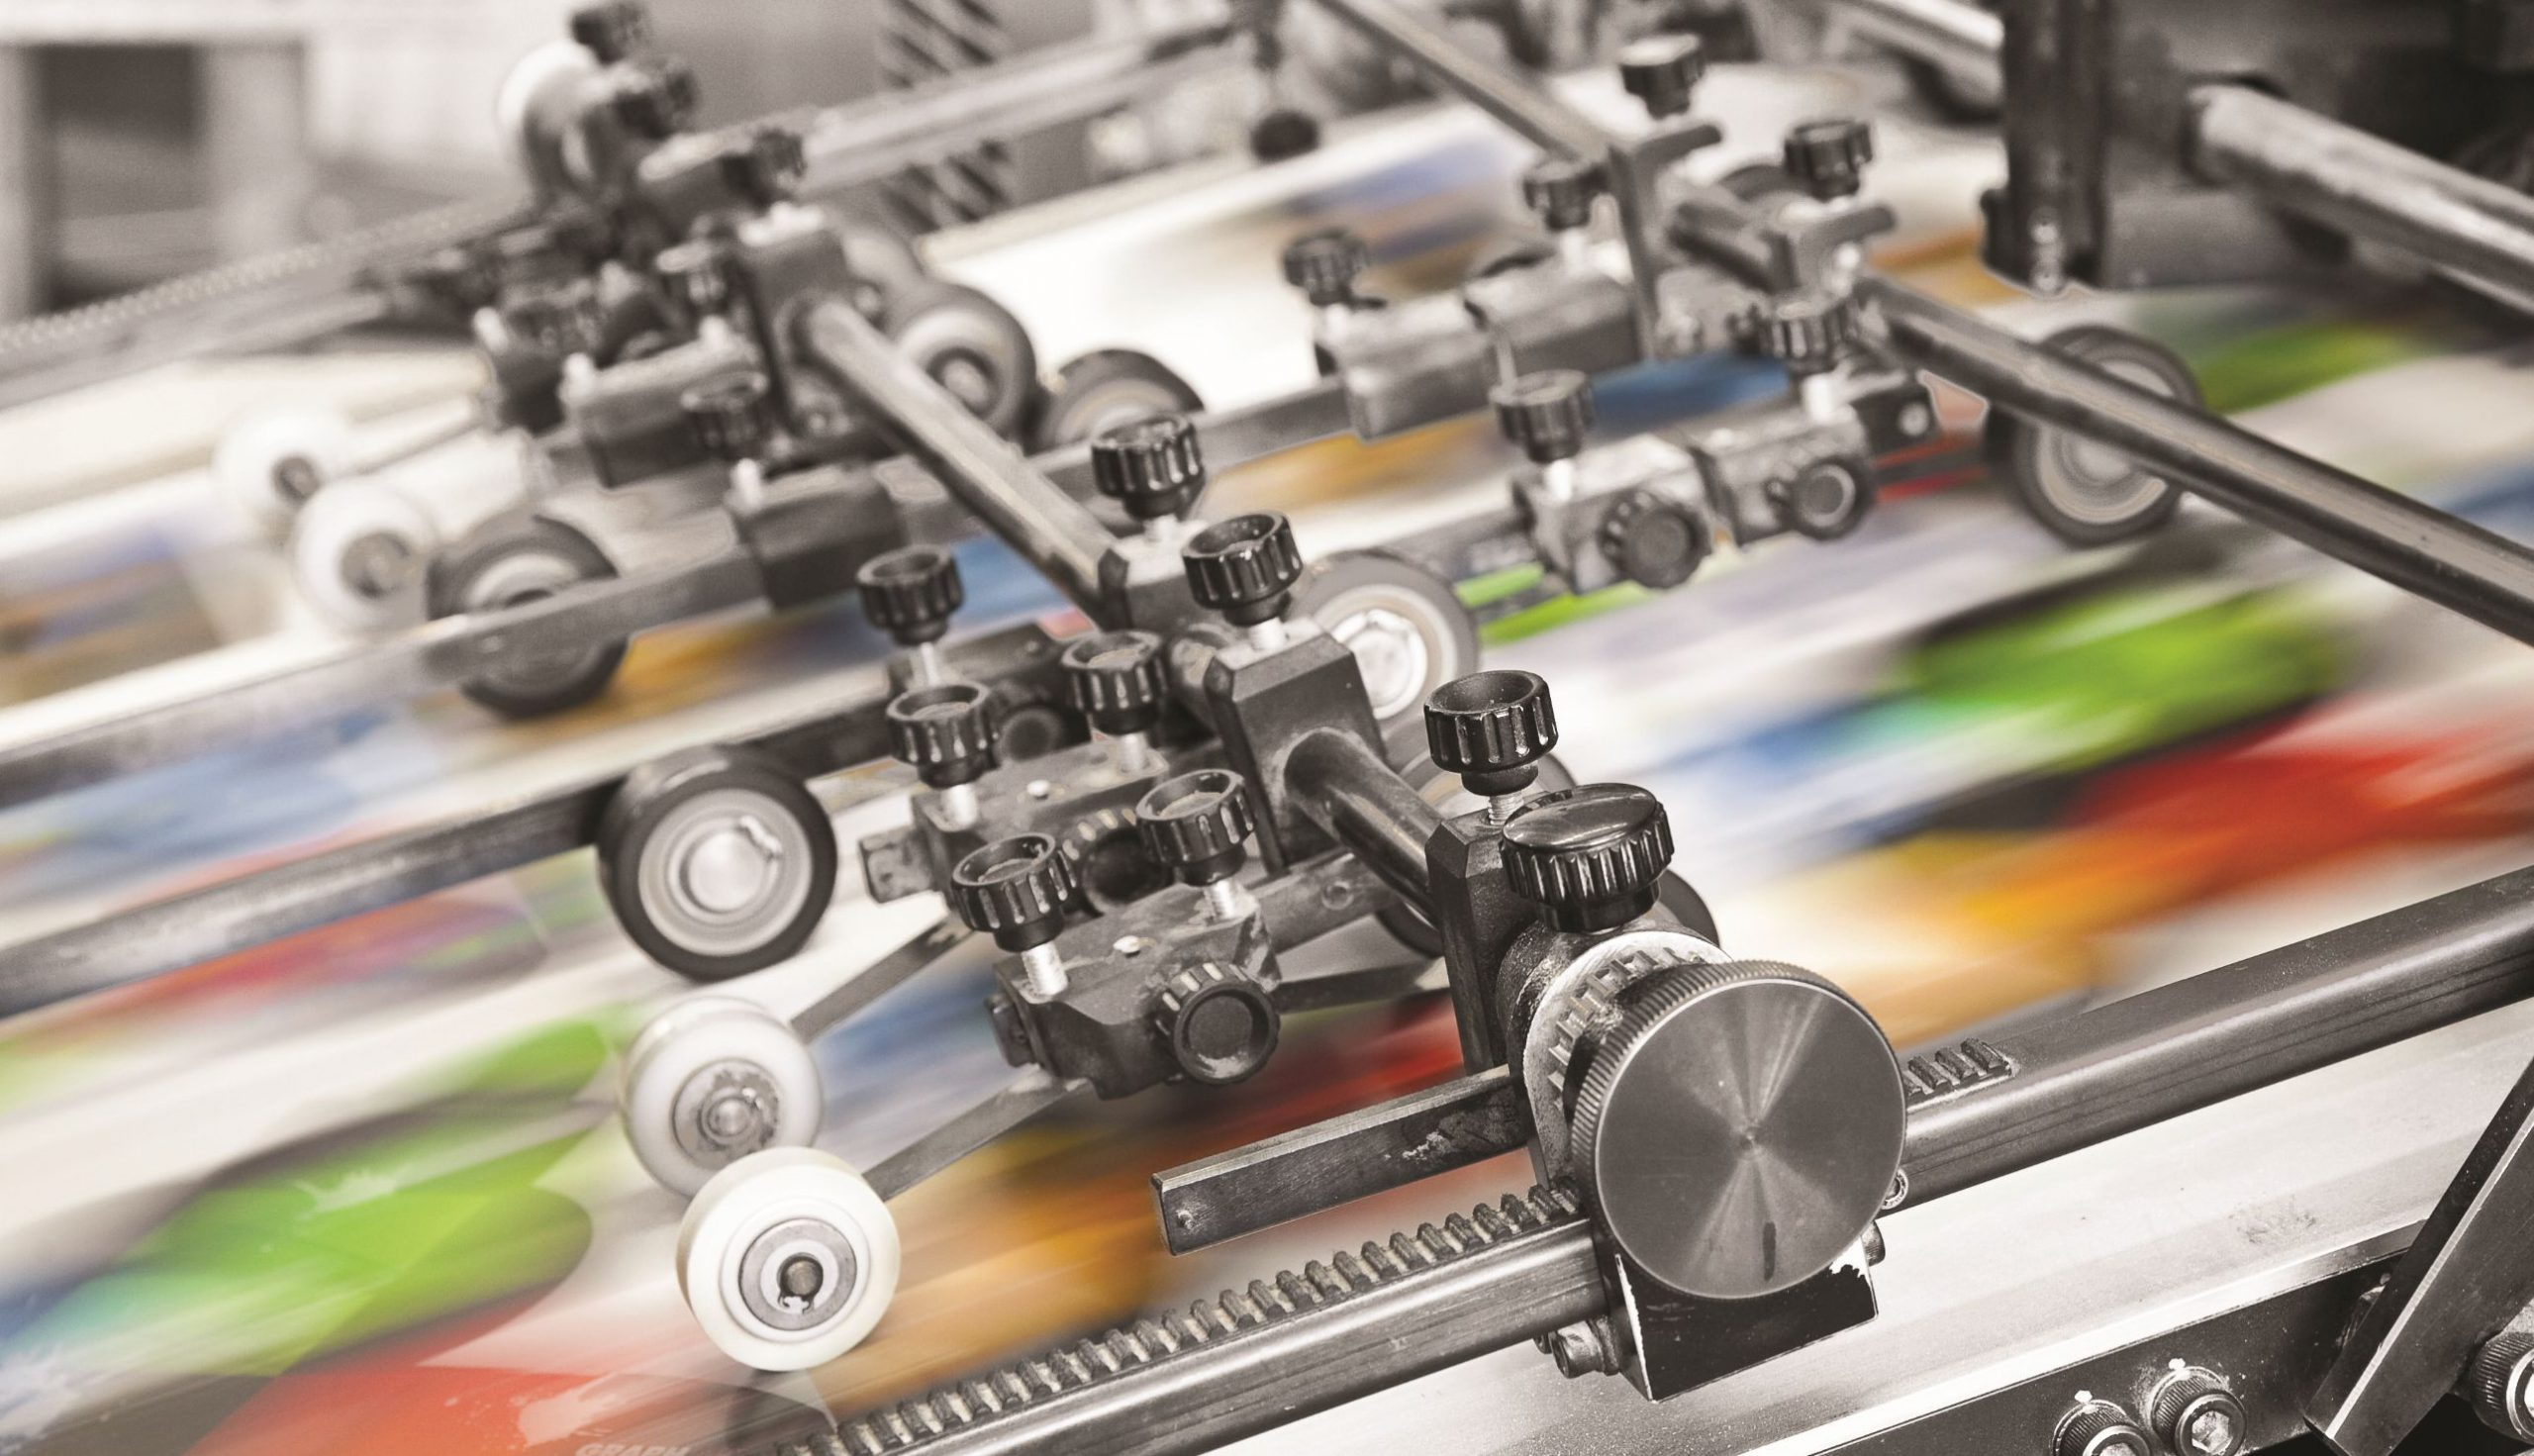 Close up of printing press creating coloured pages